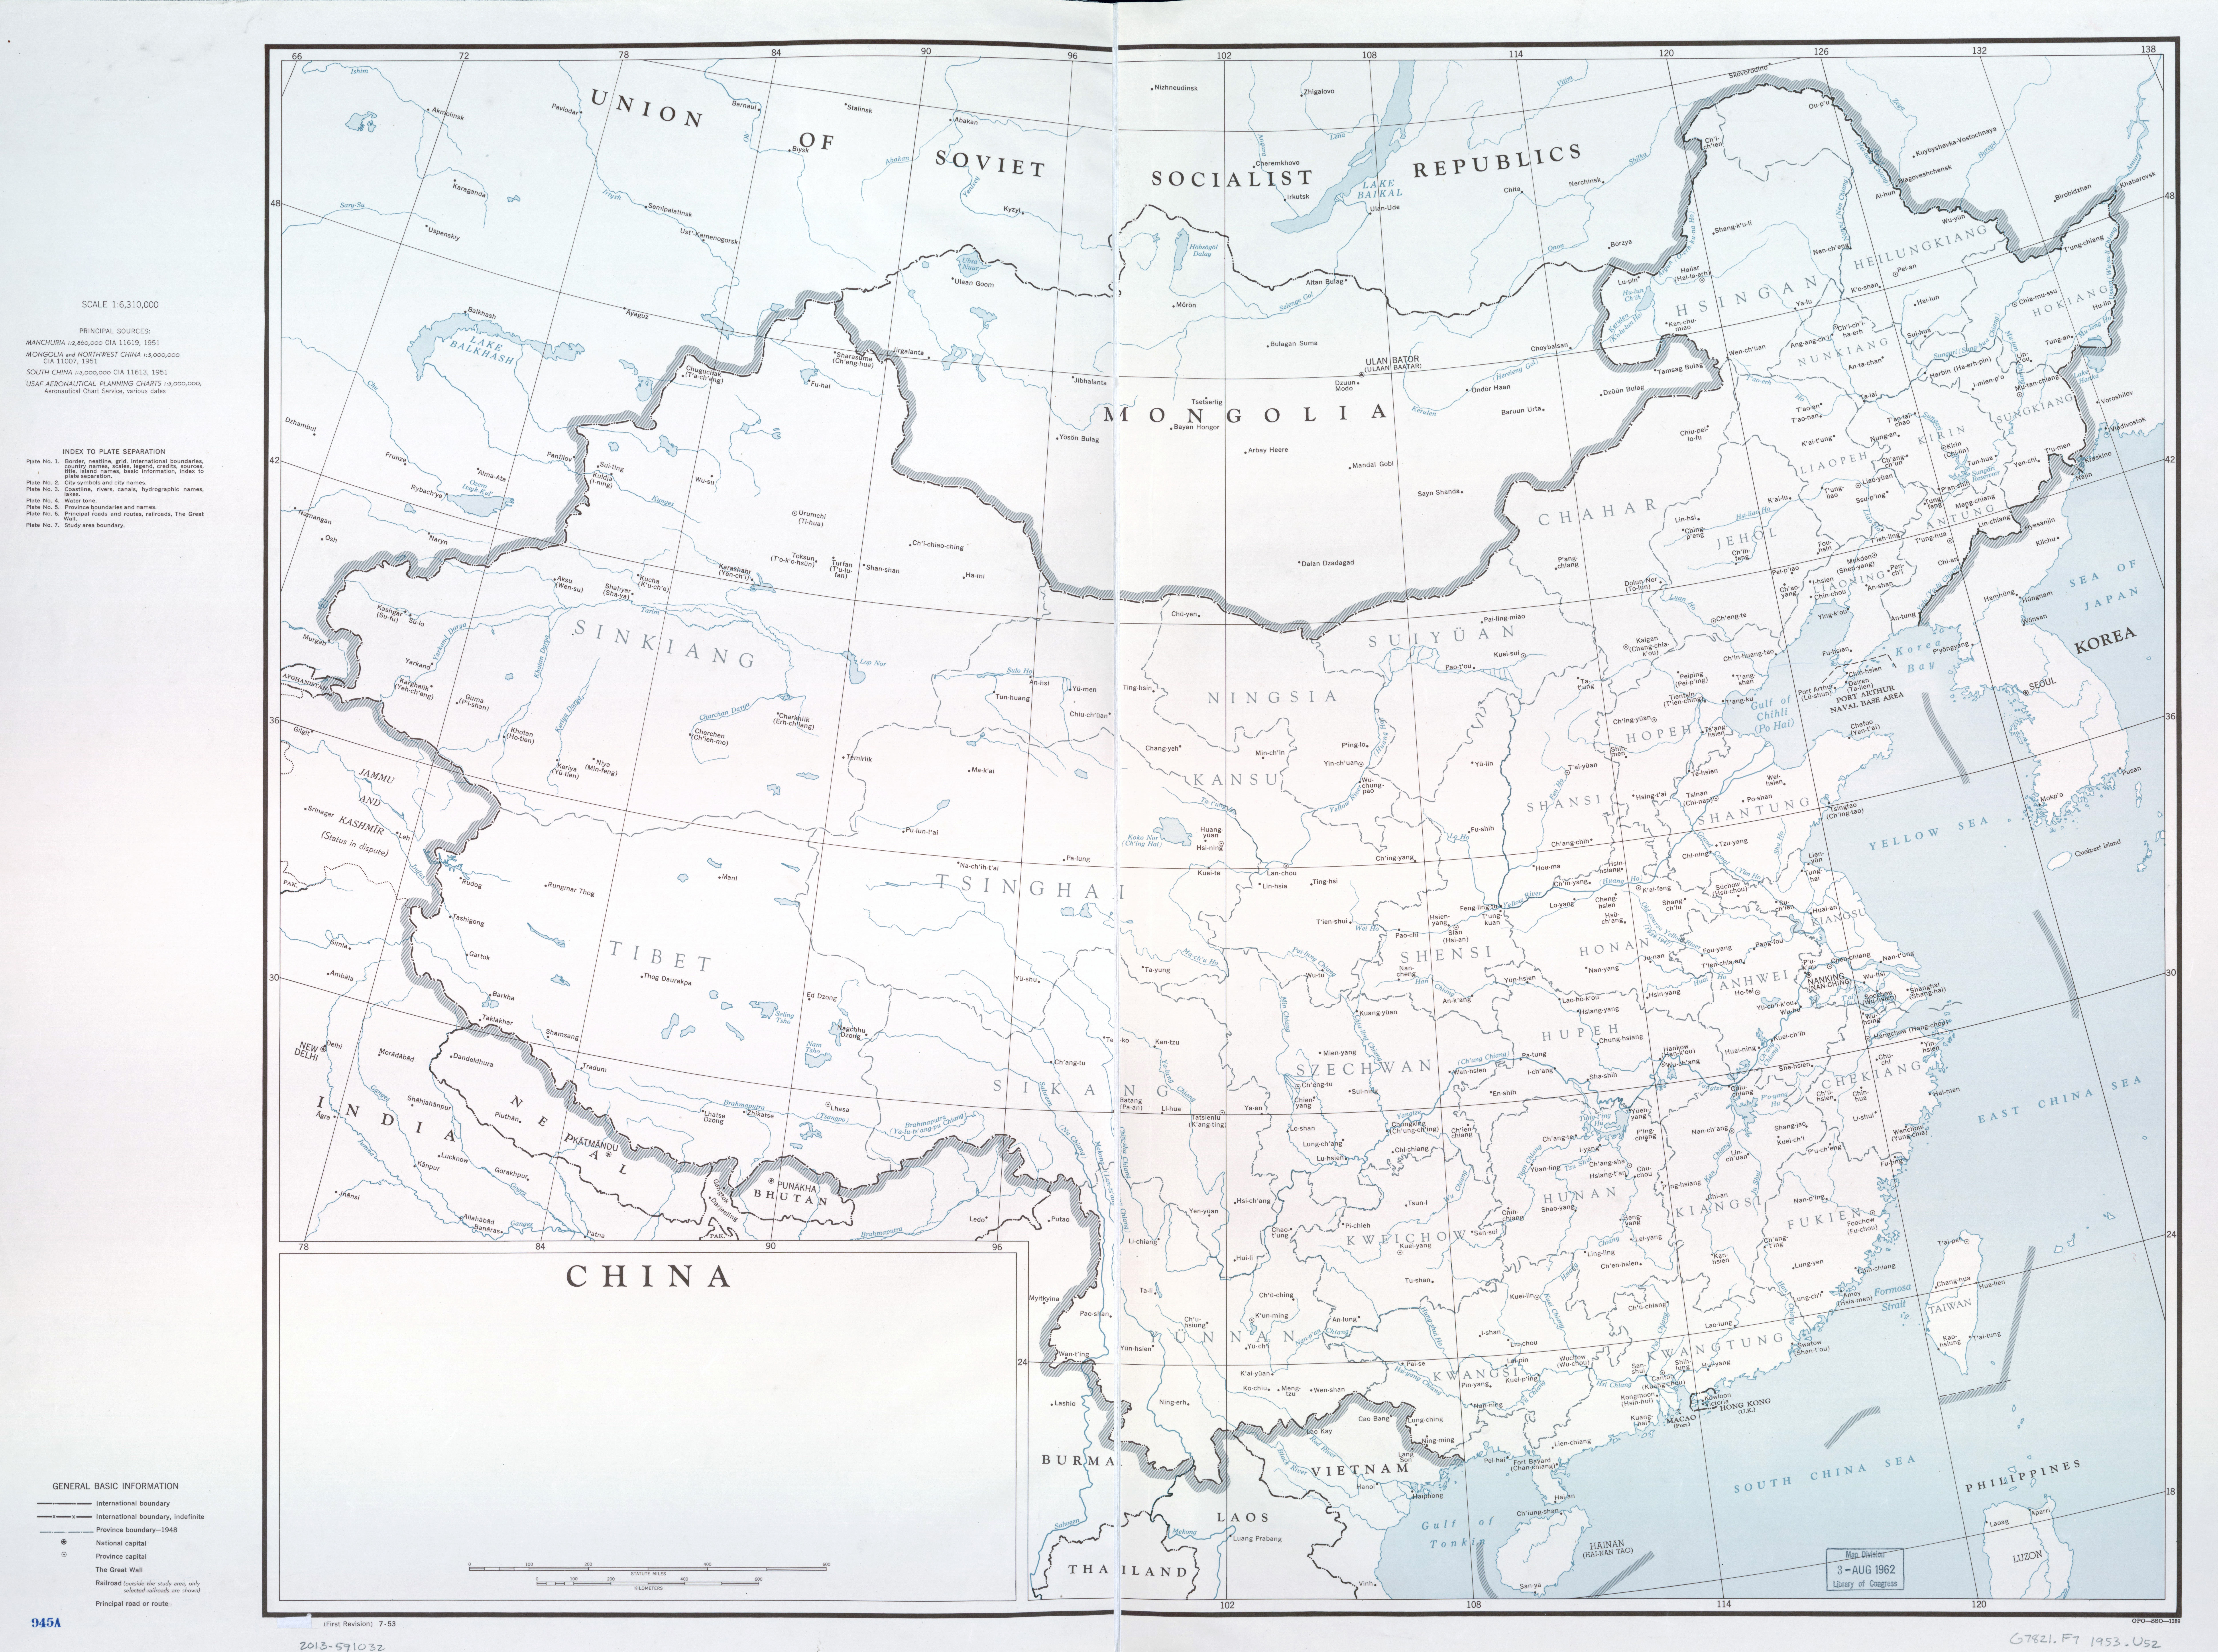 Large Scale Political And Administrative Map Of China With Lakes